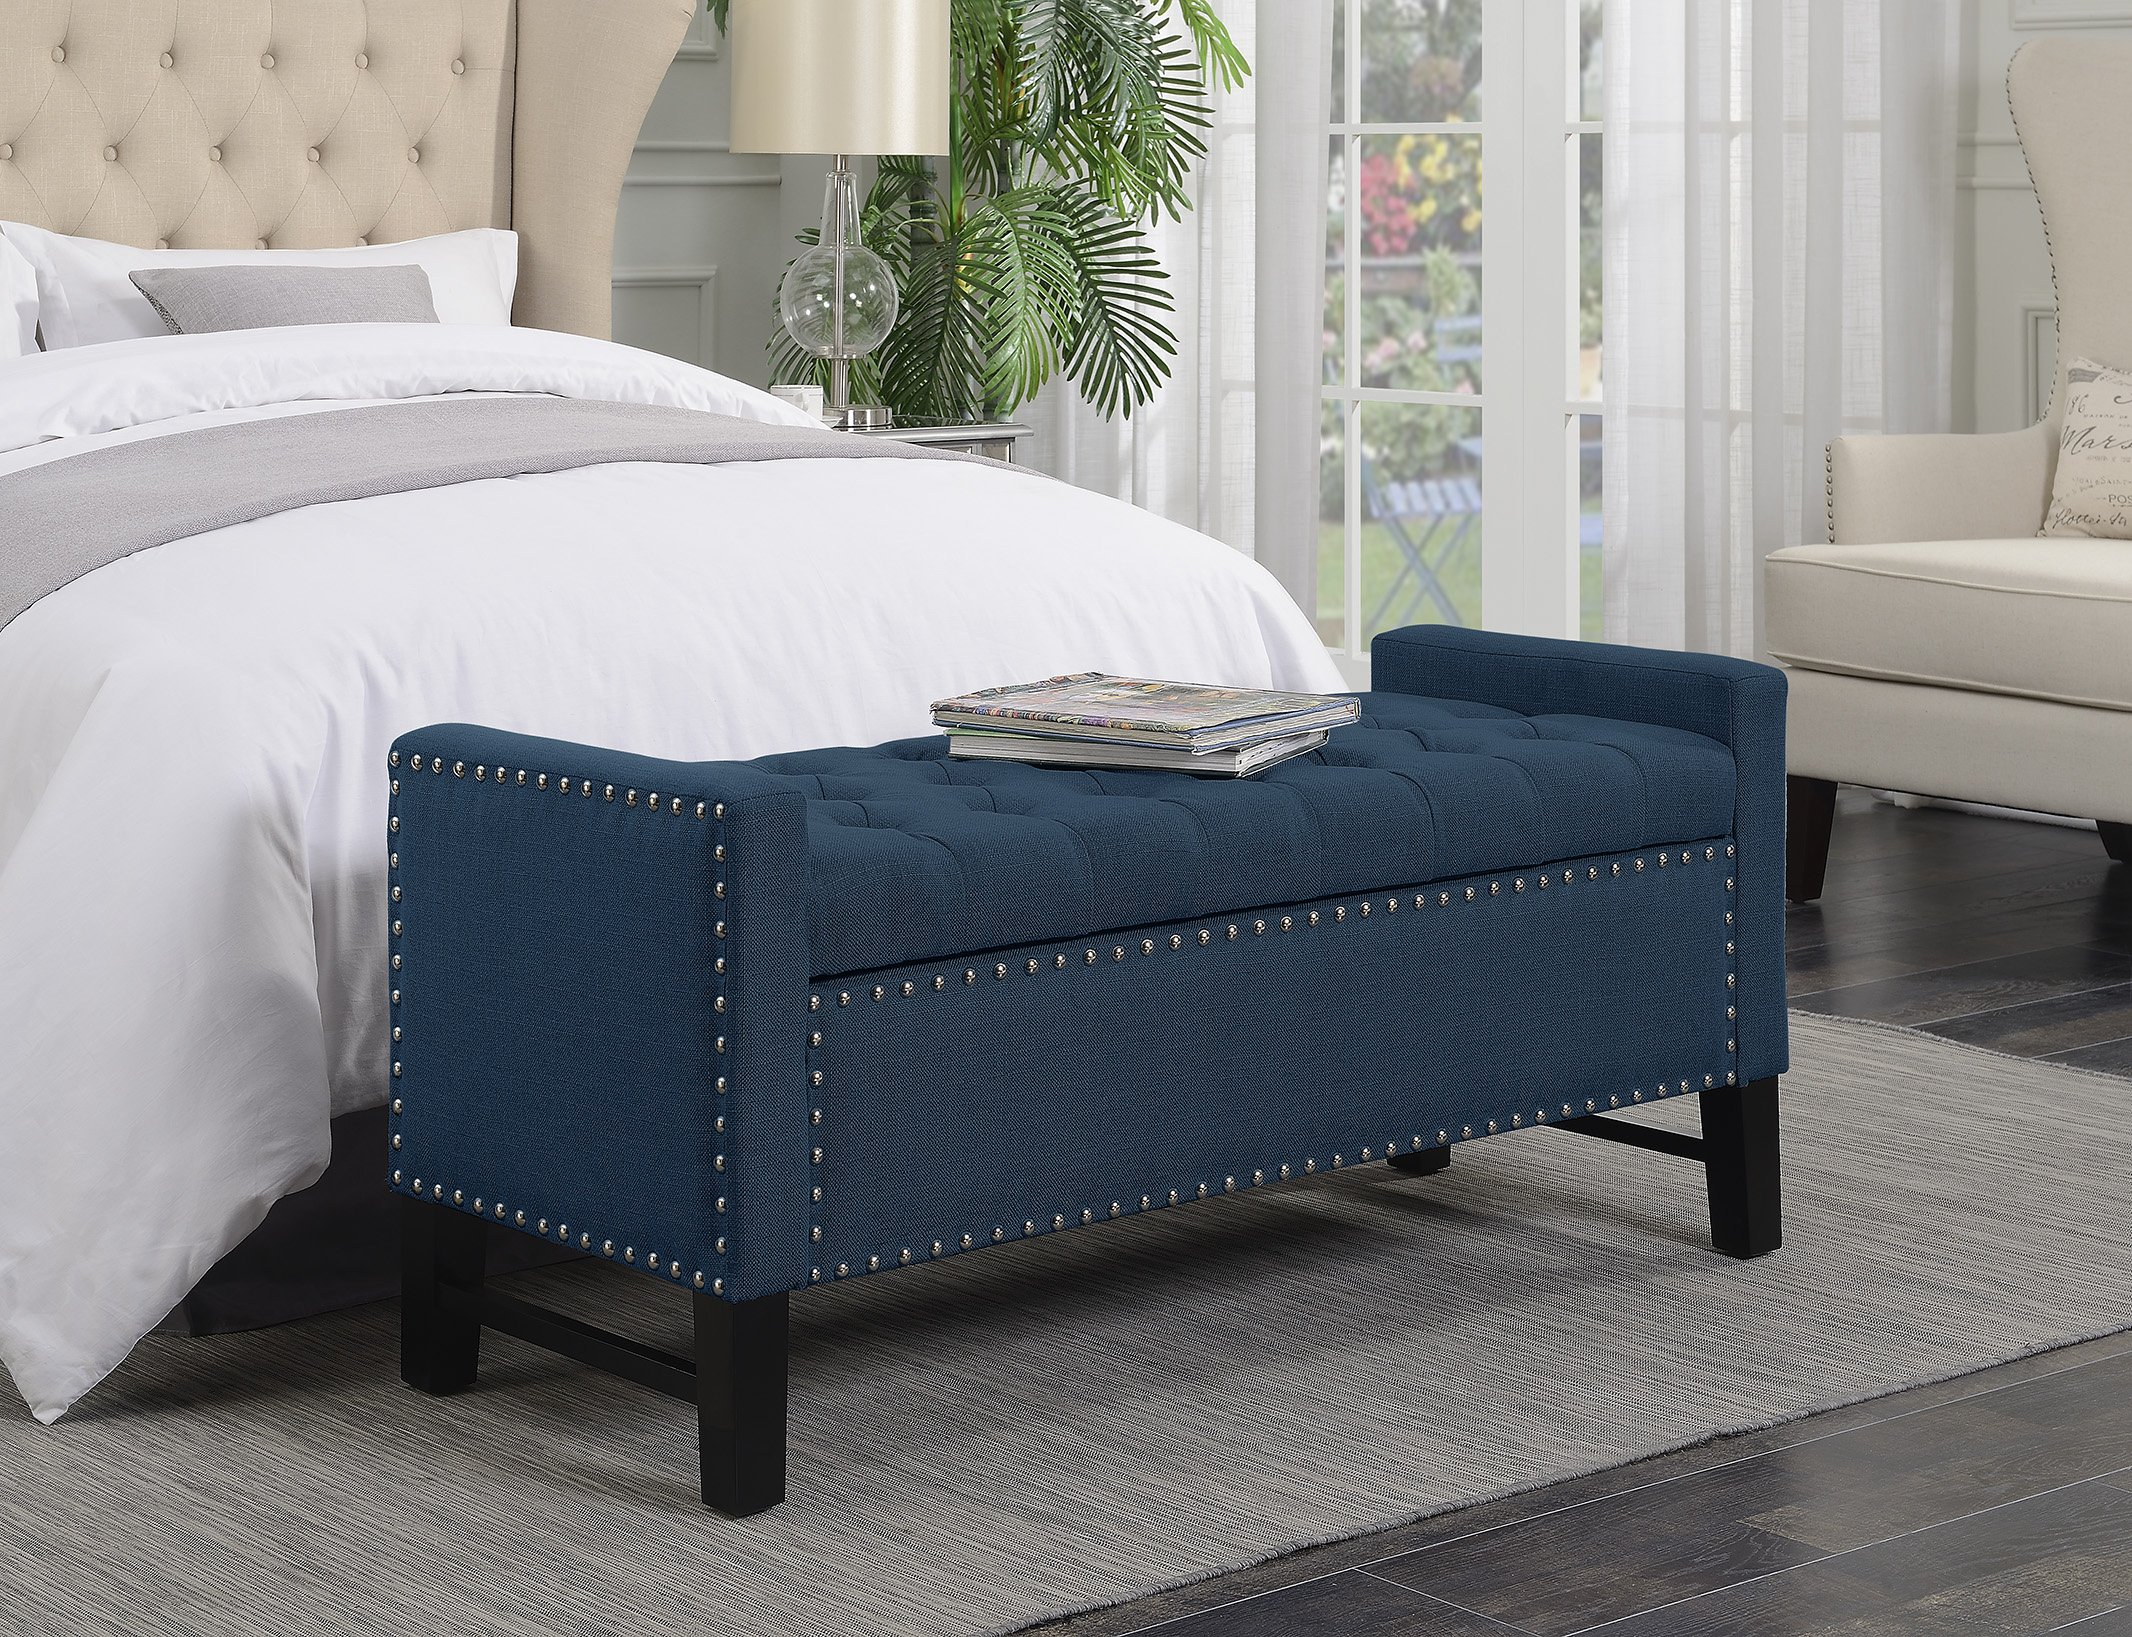 Iconic Home Lance Linen Modern Contemporary Button Tufted with Silver Nailheads Deco on Frame Storage Lid can stop at any position Bench, Teal